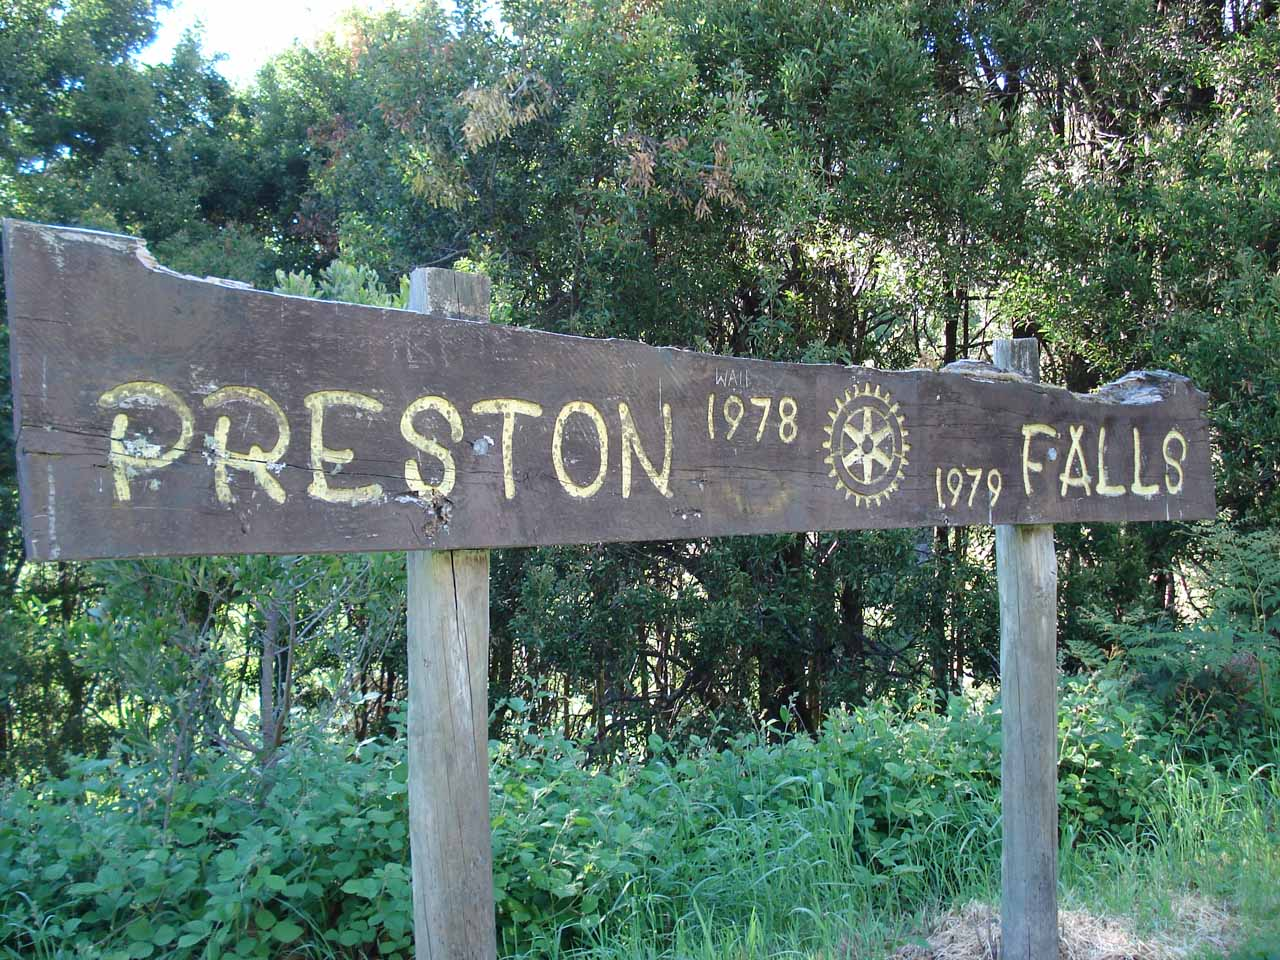 This wooden sign was there on our first visit back in late November 2006. It was still known as Preston Falls back then.  Now, the wooden sign was gone, but a more modern one was in its place and still had the same name (in December 2017)